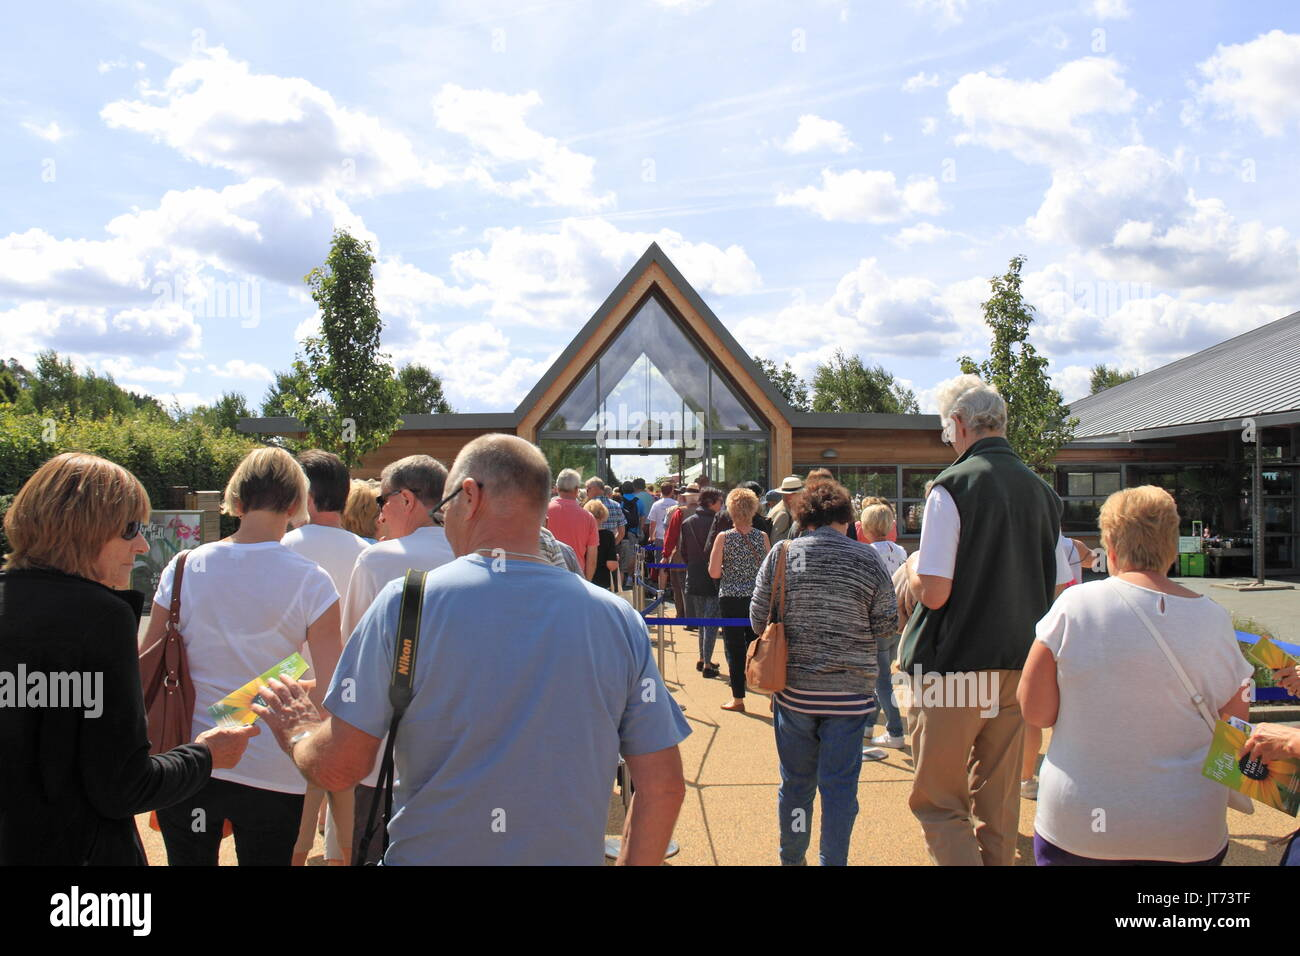 Queues at the admissions building, RHS Garden Hyde Hall Flower Show 2017, Chelmsford, Essex, England, Great Britain, United Kingdom, UK, Europe - Stock Image